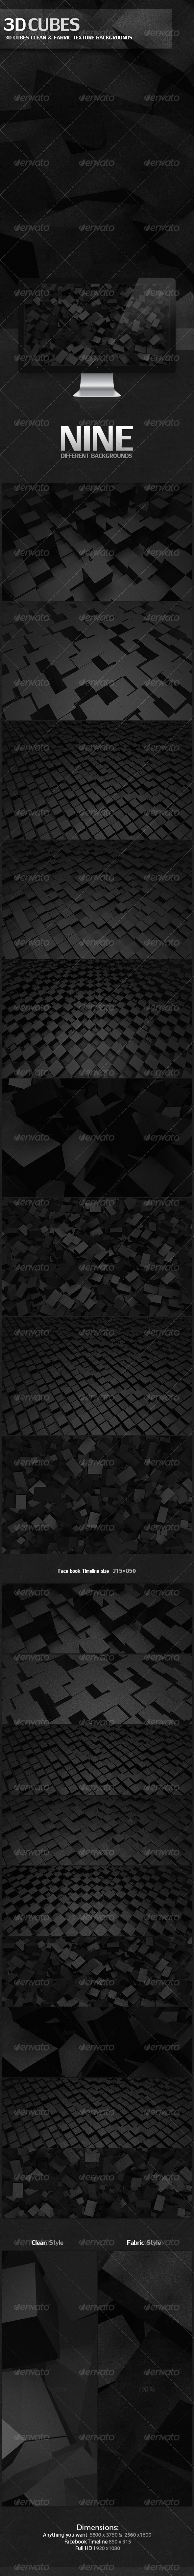 3D Cubes Clean & Fabric Texture Backgrounds - 3D Backgrounds